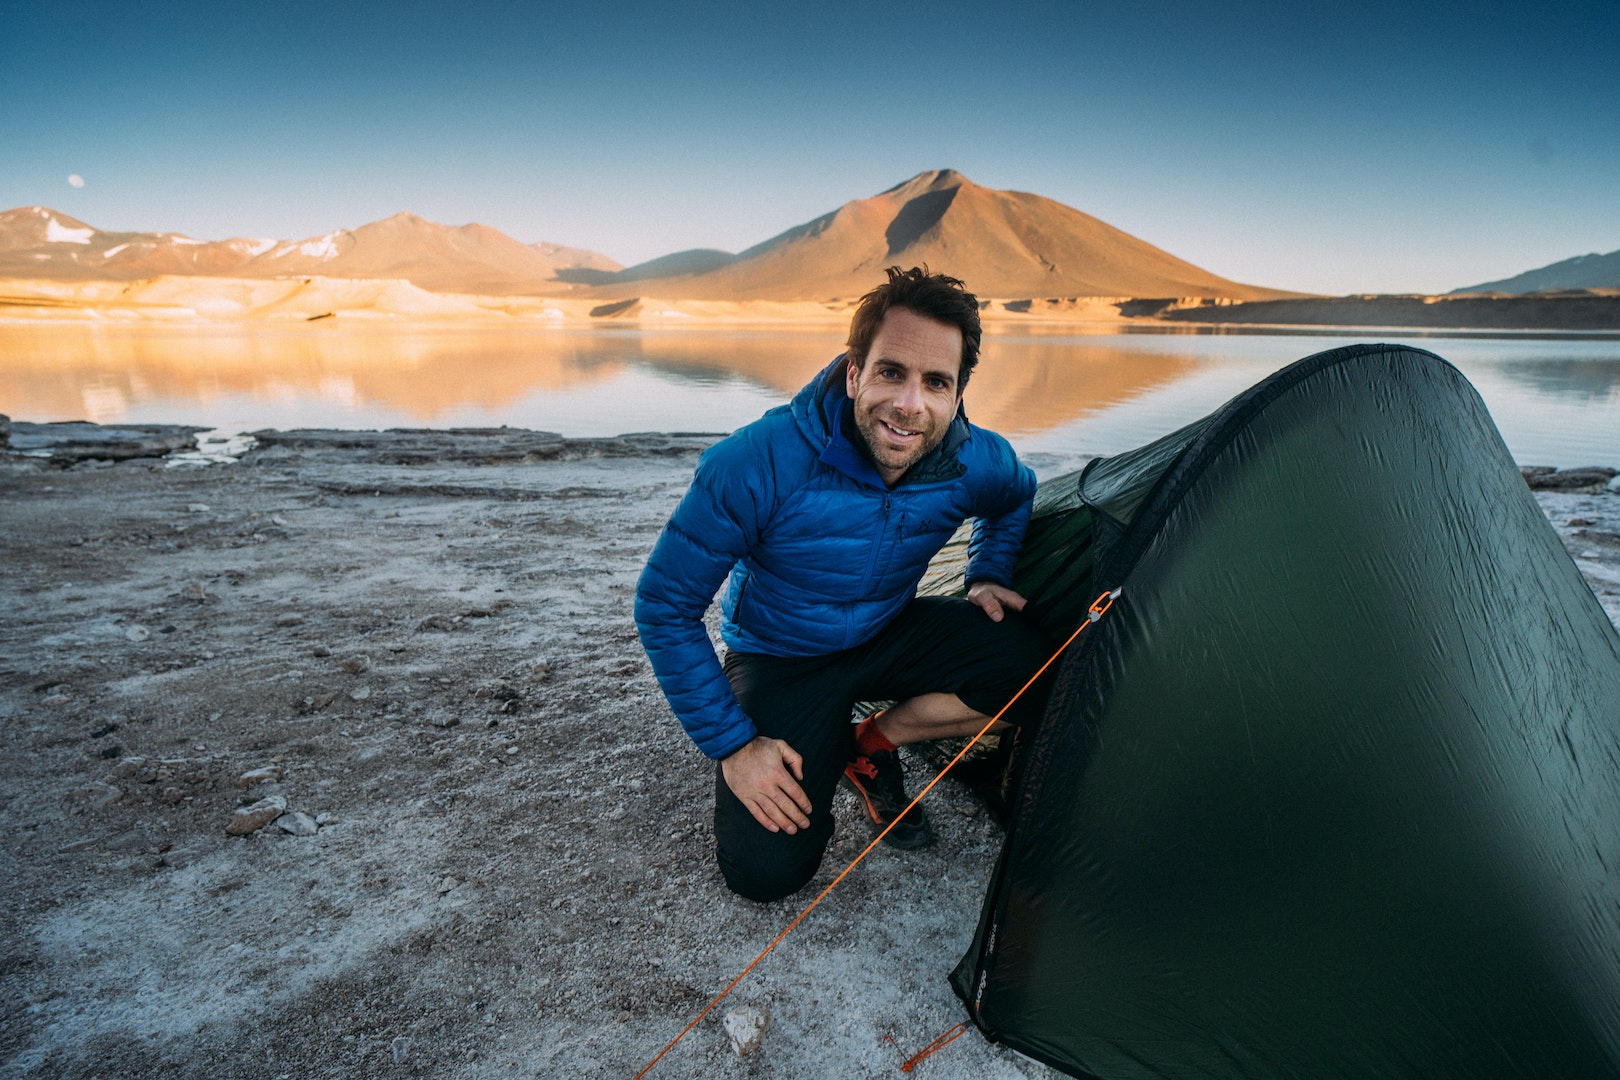 Vango Unveil An Ultralight 'Inflatable' Backpacking Tent